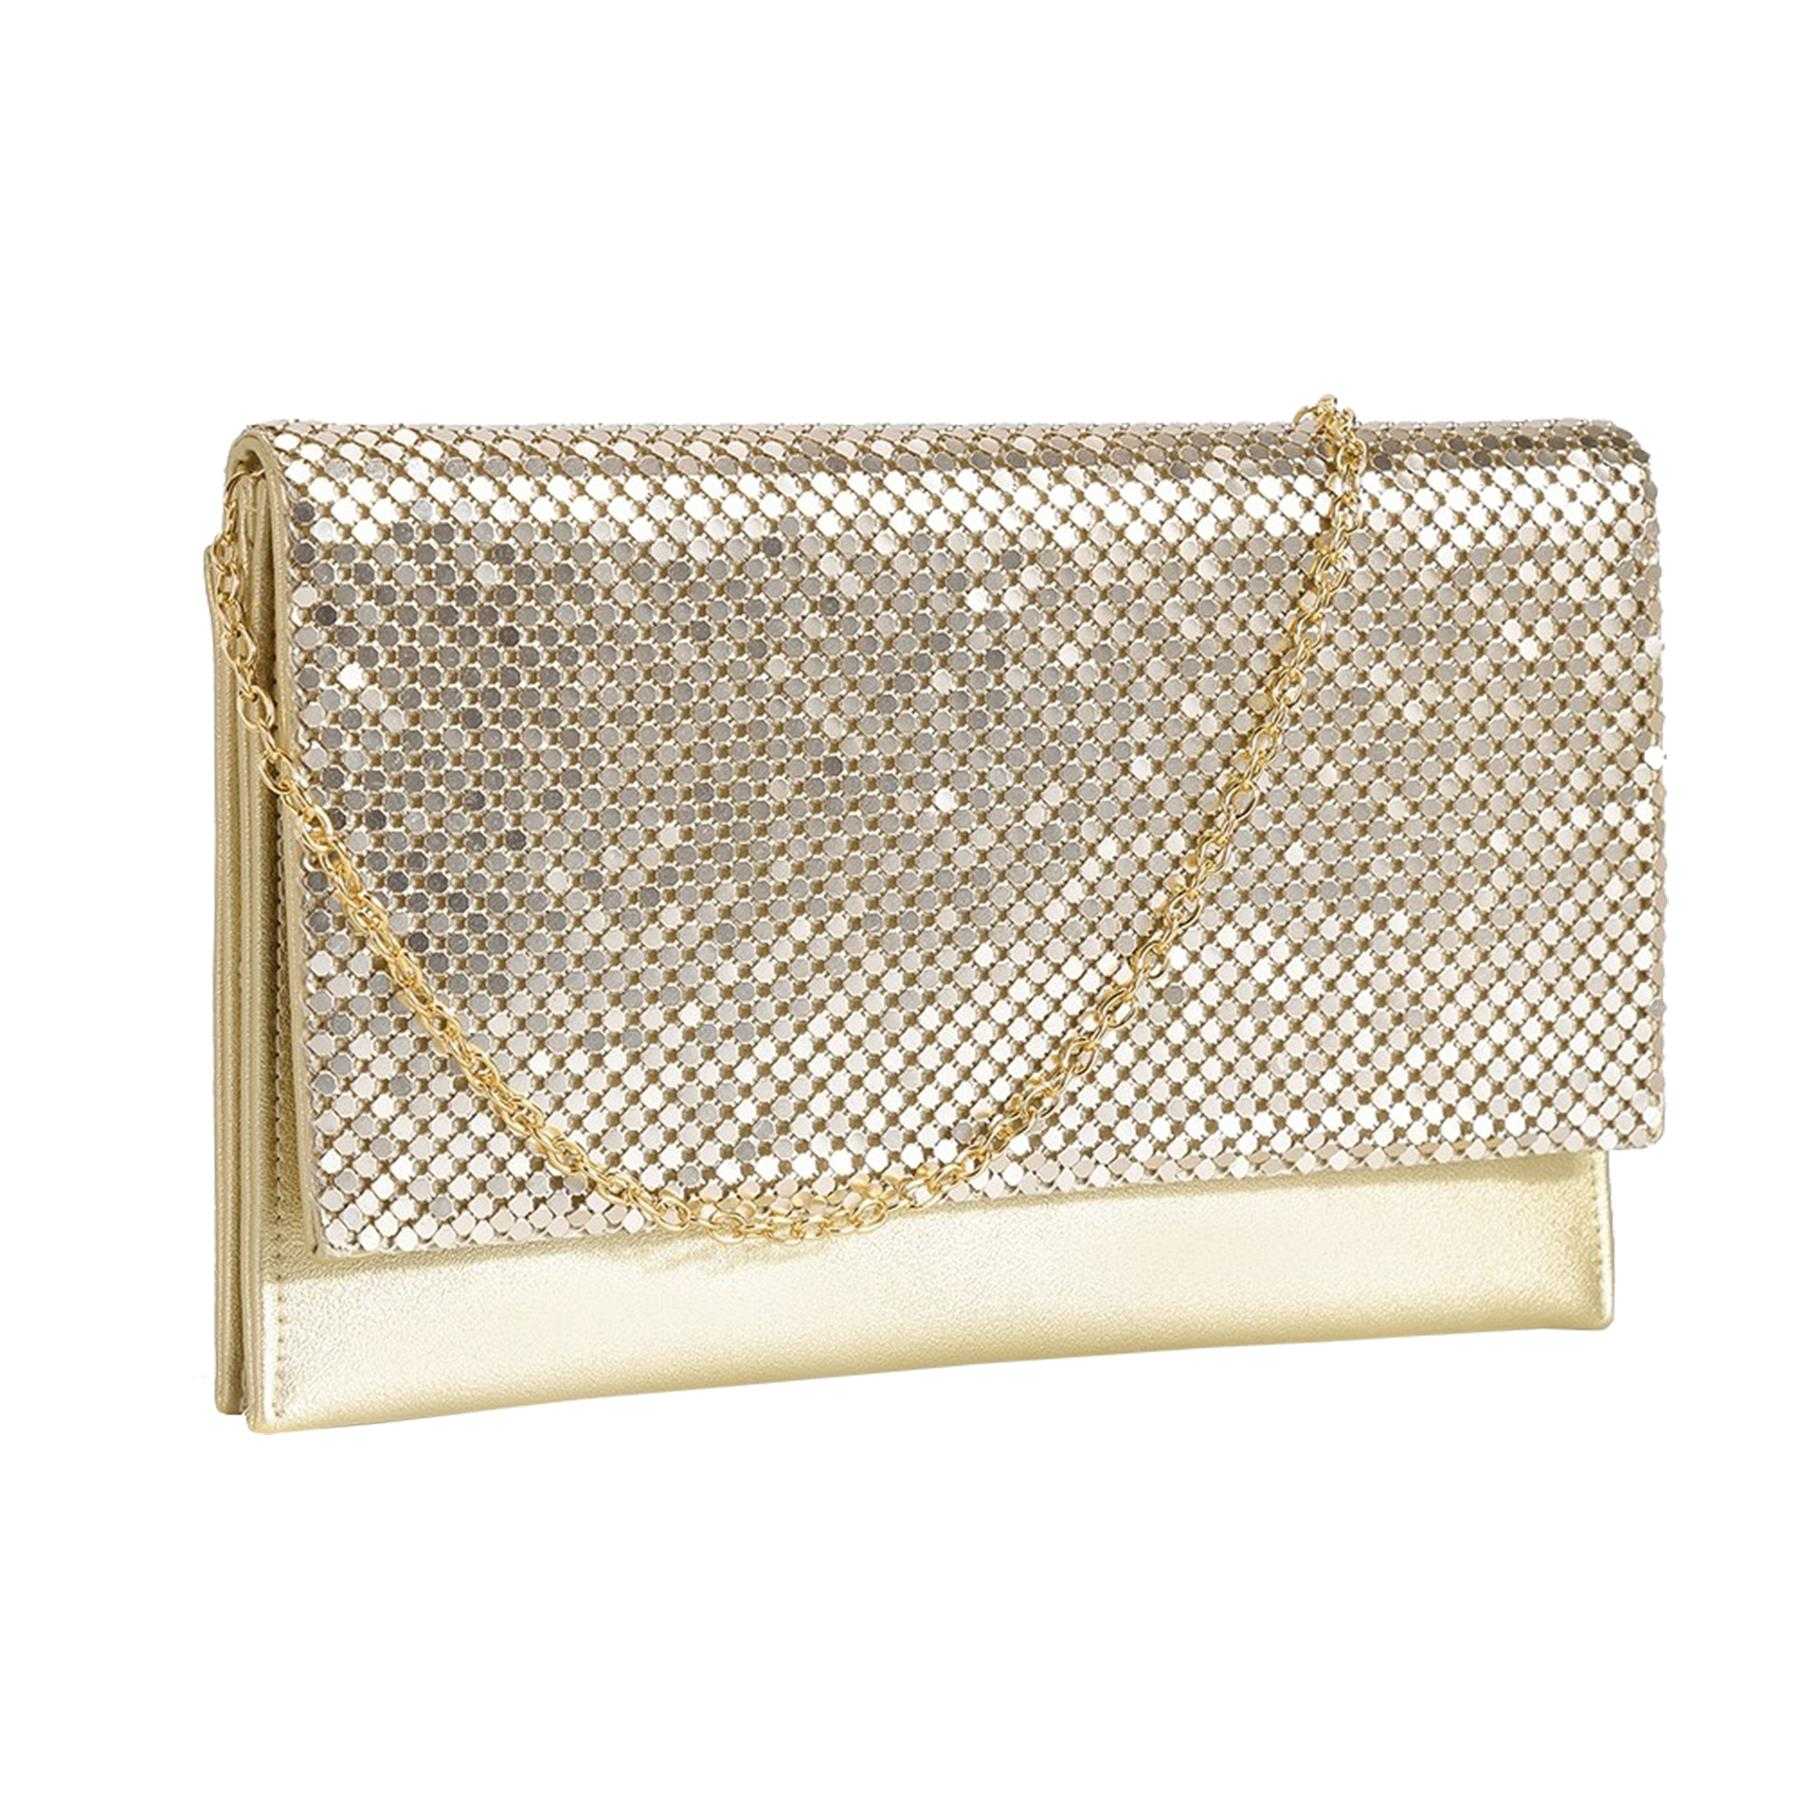 New-Ladies-Chainmail-Faux-Leather-Chain-Strap-Wedding-Clutch-Bag-Pouch thumbnail 6